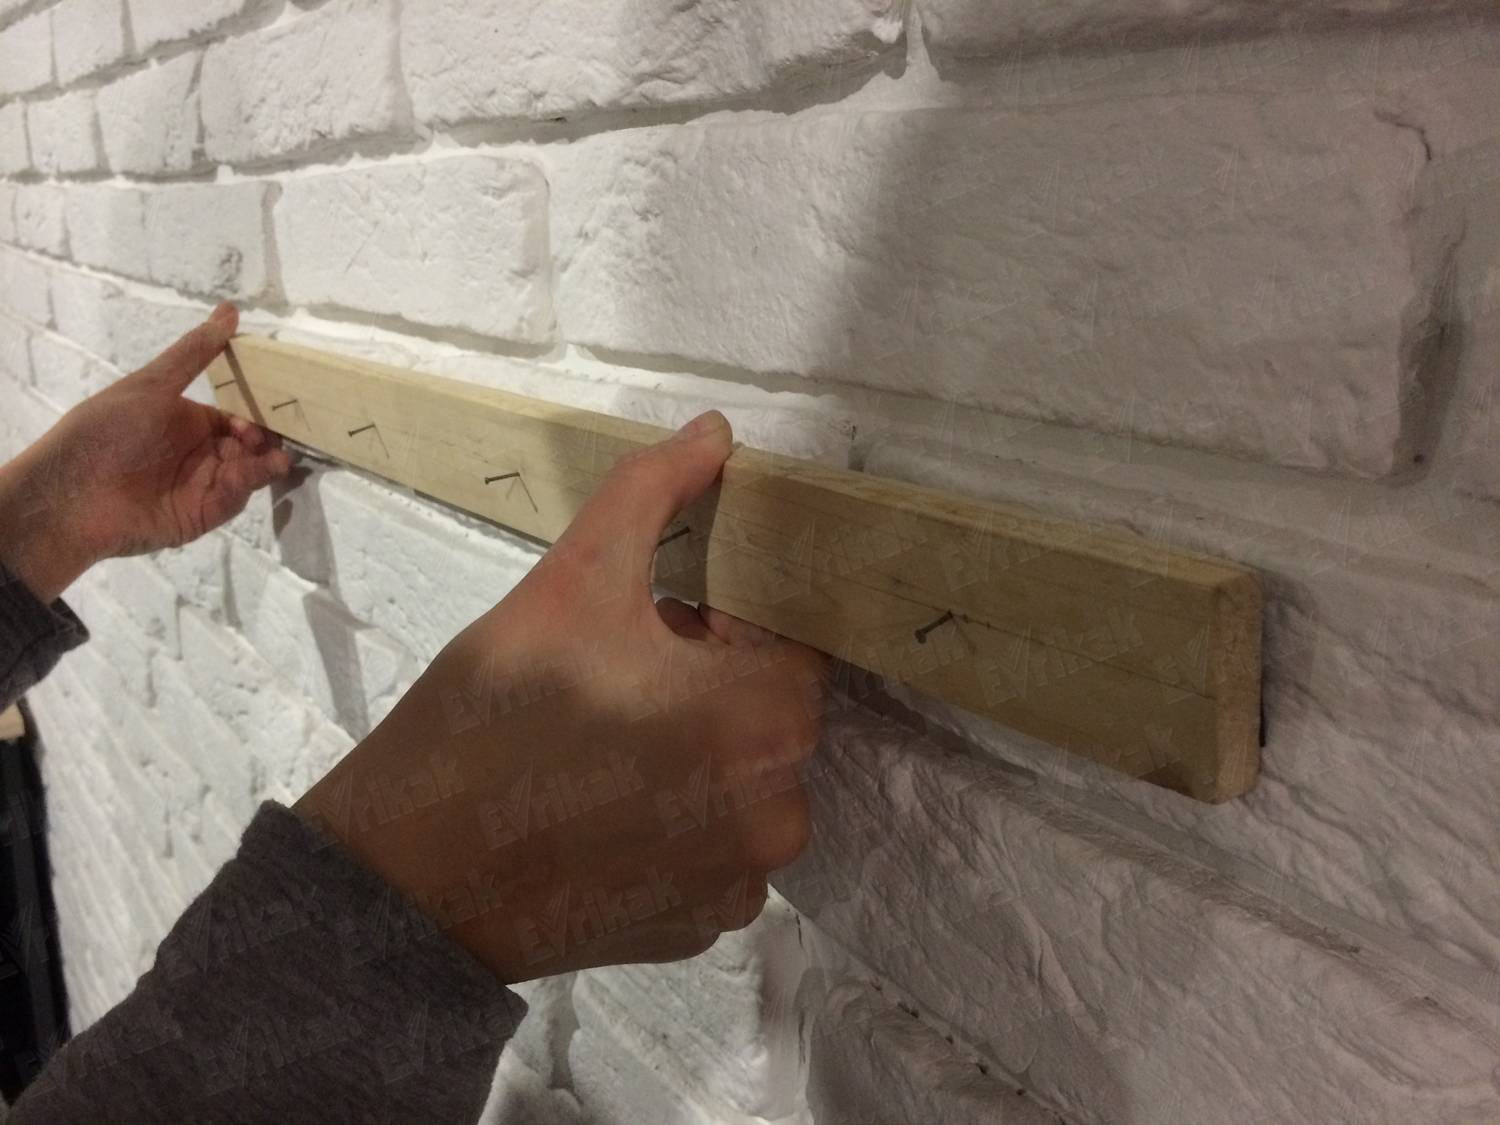 Nailing the lower wooden plank